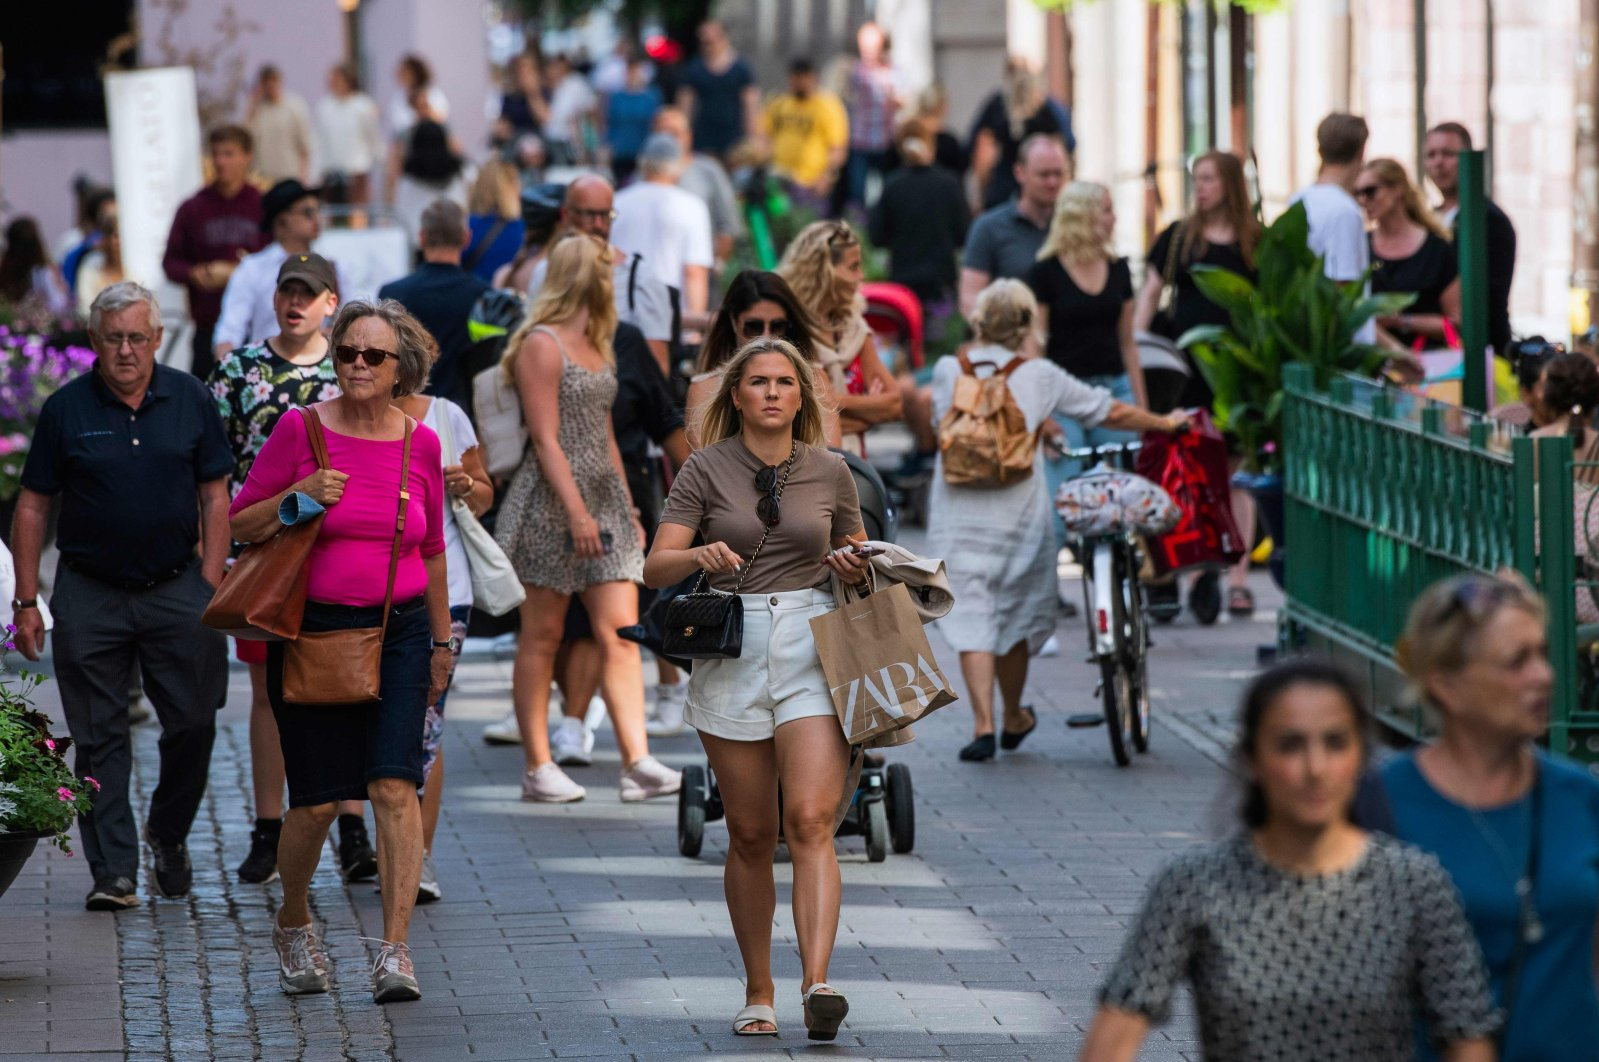 People walk in Stockholm during the coronavirus pandemic, Sweden, July 27, 2020. (AFP Photo)